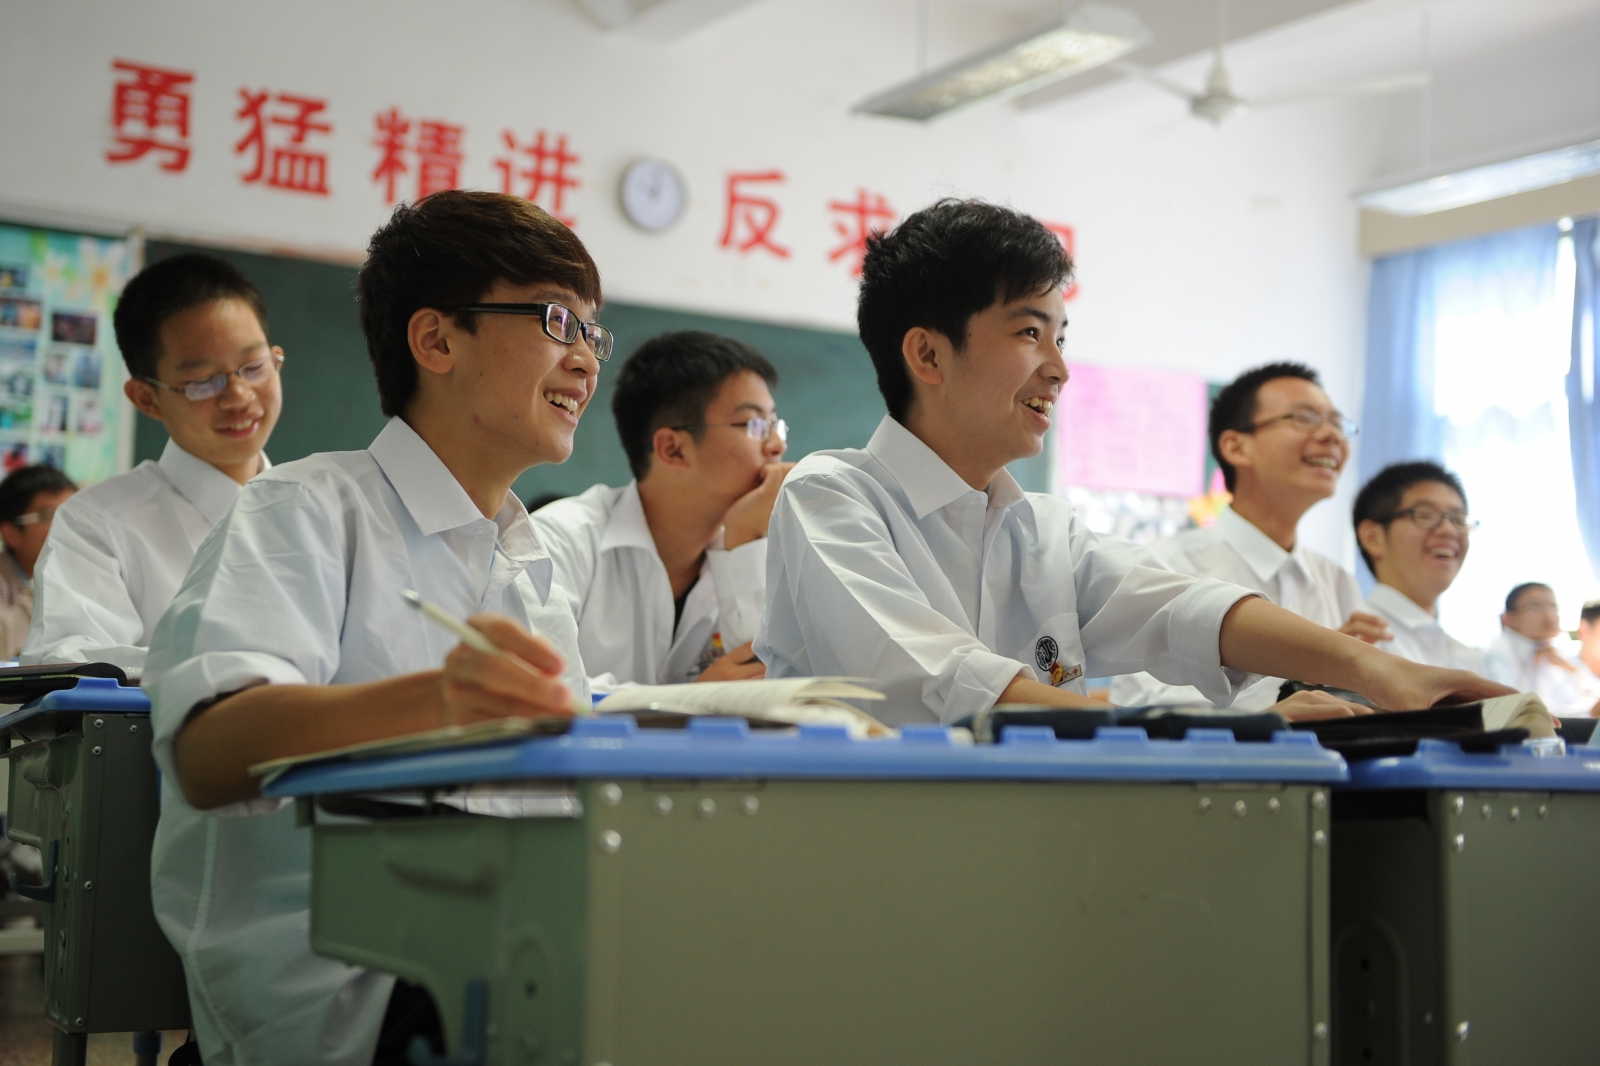 Marks Bank China School To Lend Marks To Help